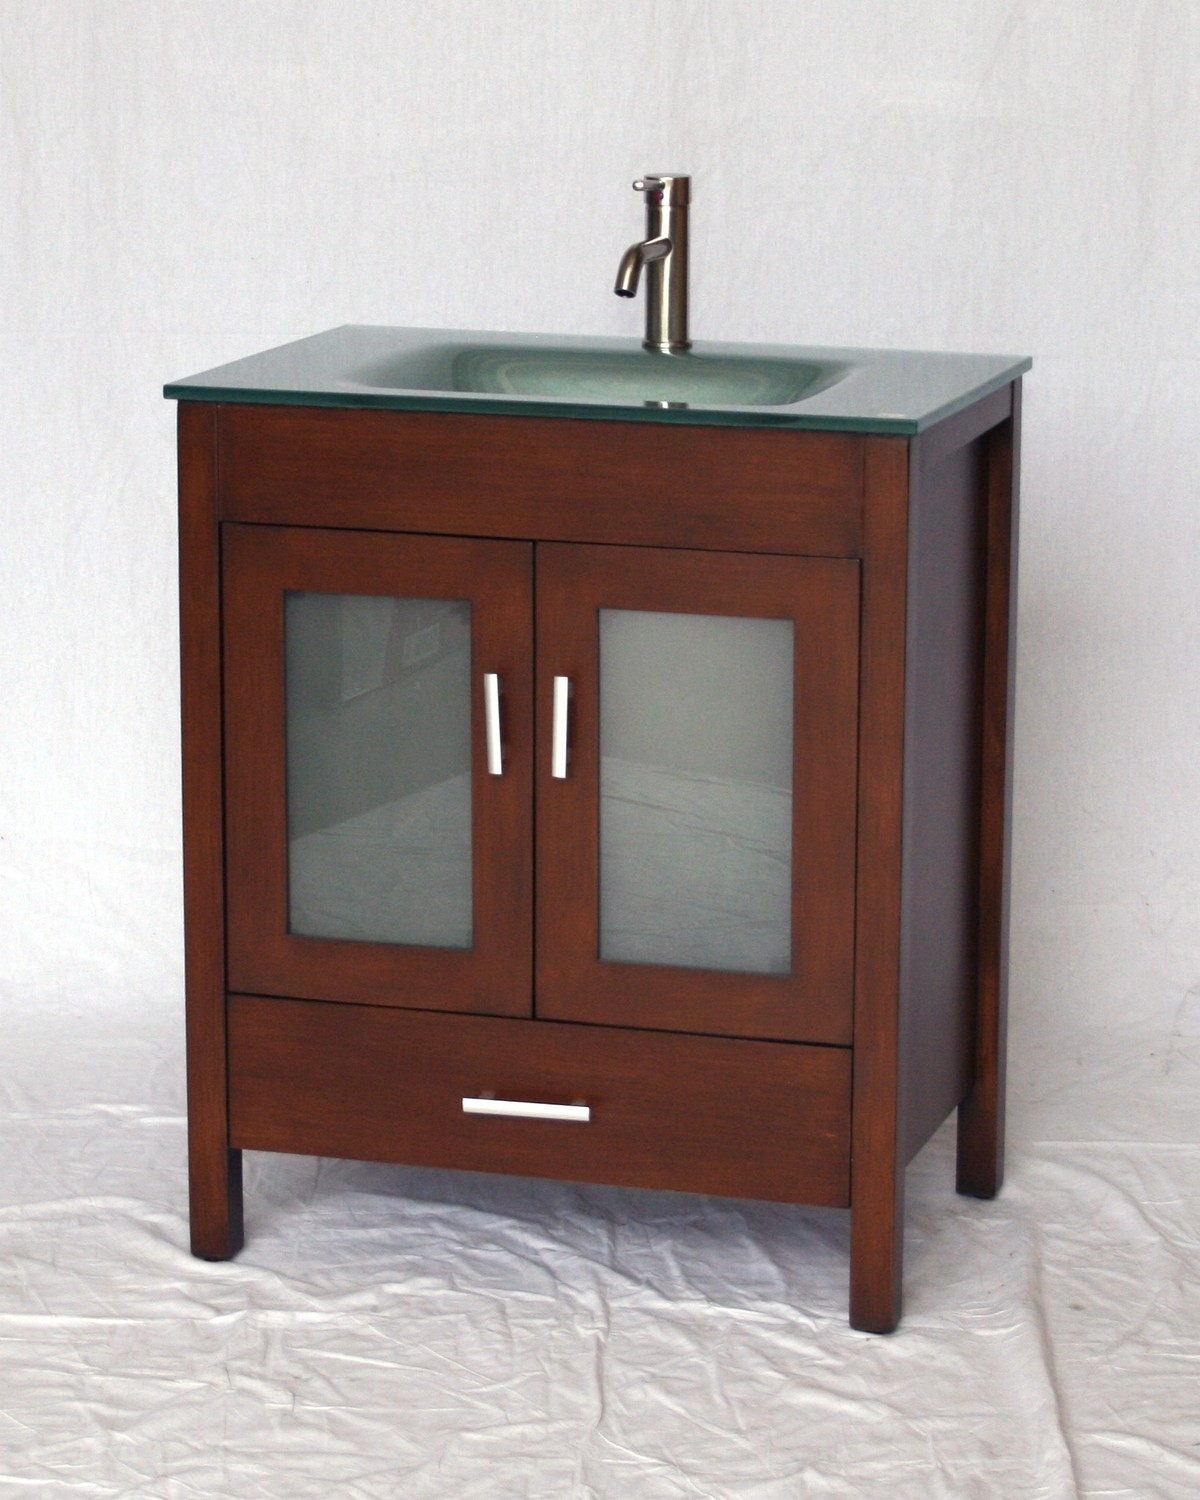 "30"" Adelina Contemporary Style Single Sink Bathroom Vanity in Walnut Finish with Tempered Glass Countertop"